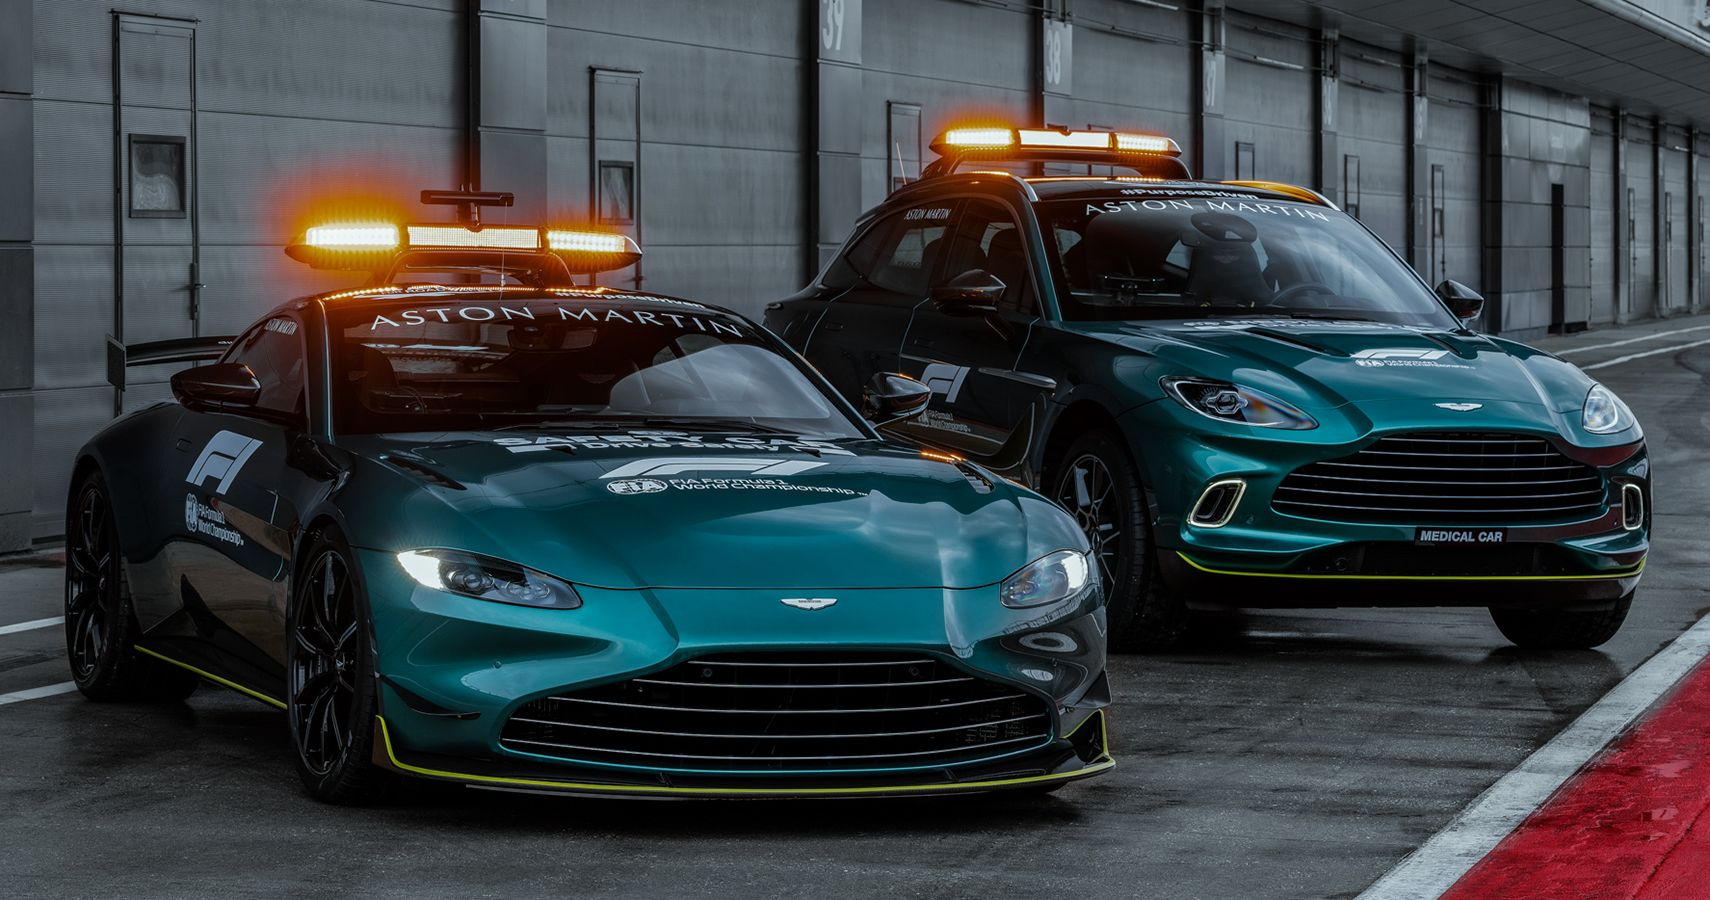 Aston Martin 2021 Formula 1 Safety And Medical Cars Unveiled